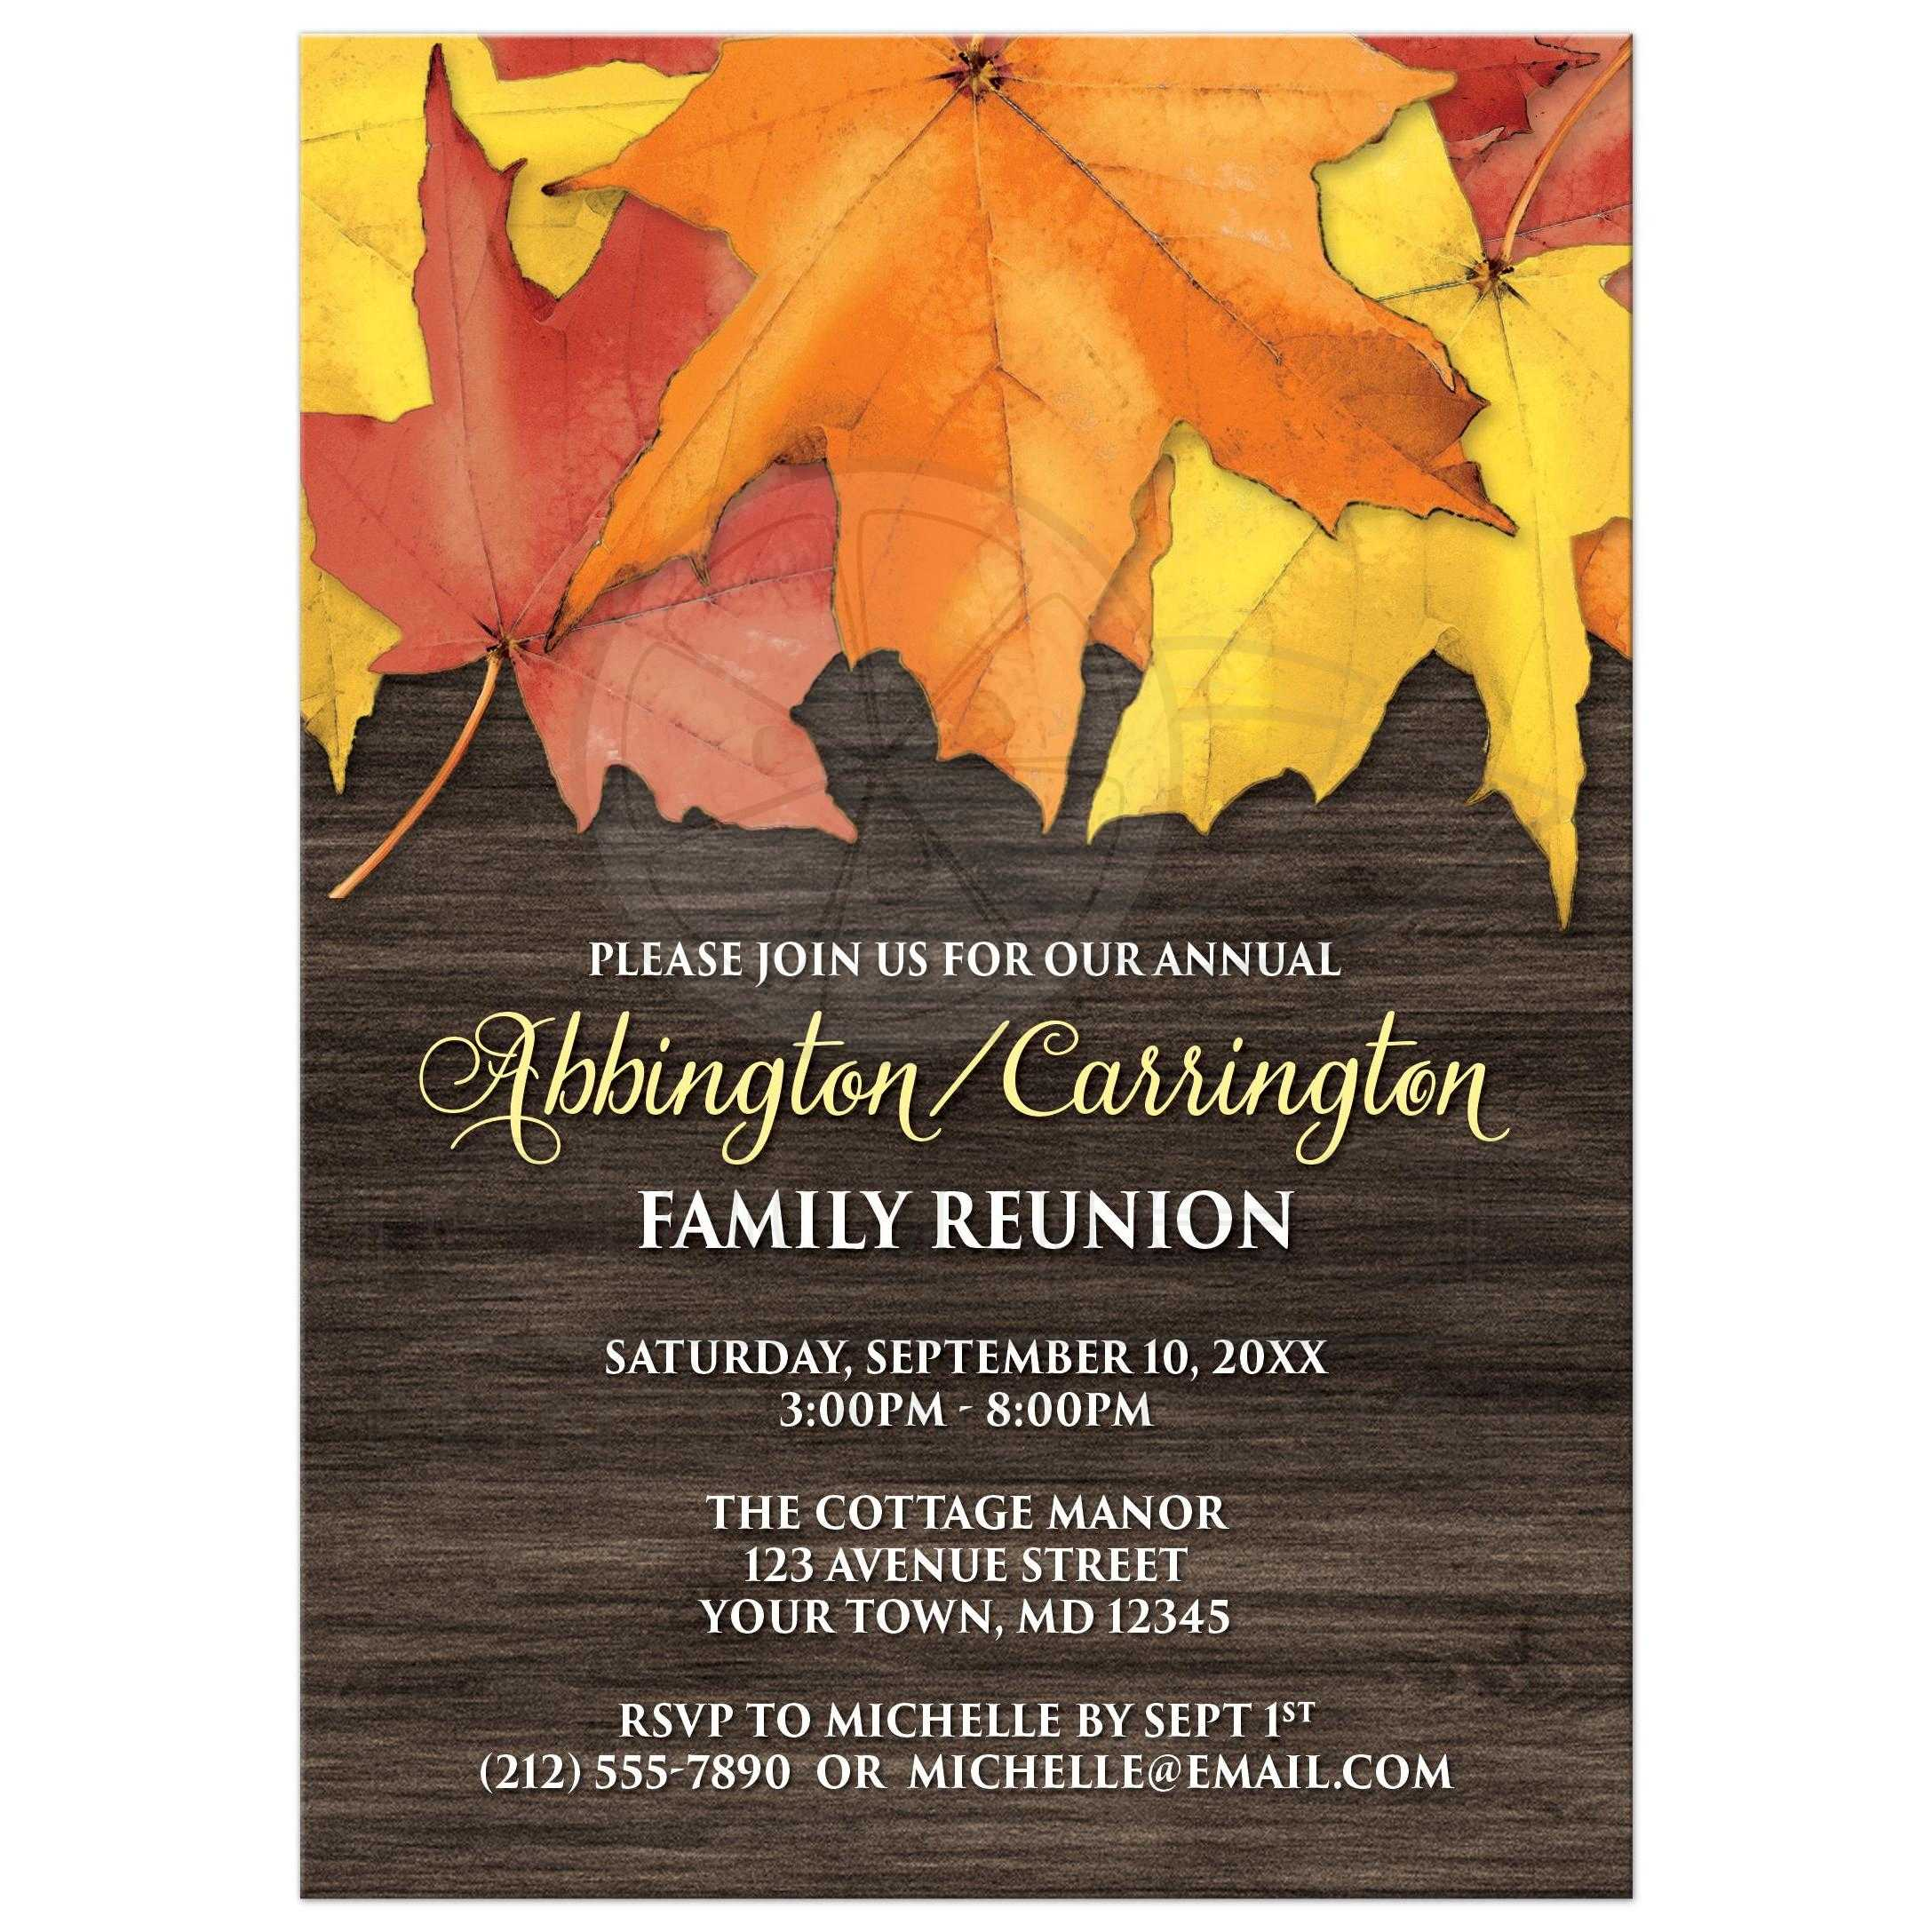 Family Reunion Invitations - Rustic Autumn Leaves and Wood